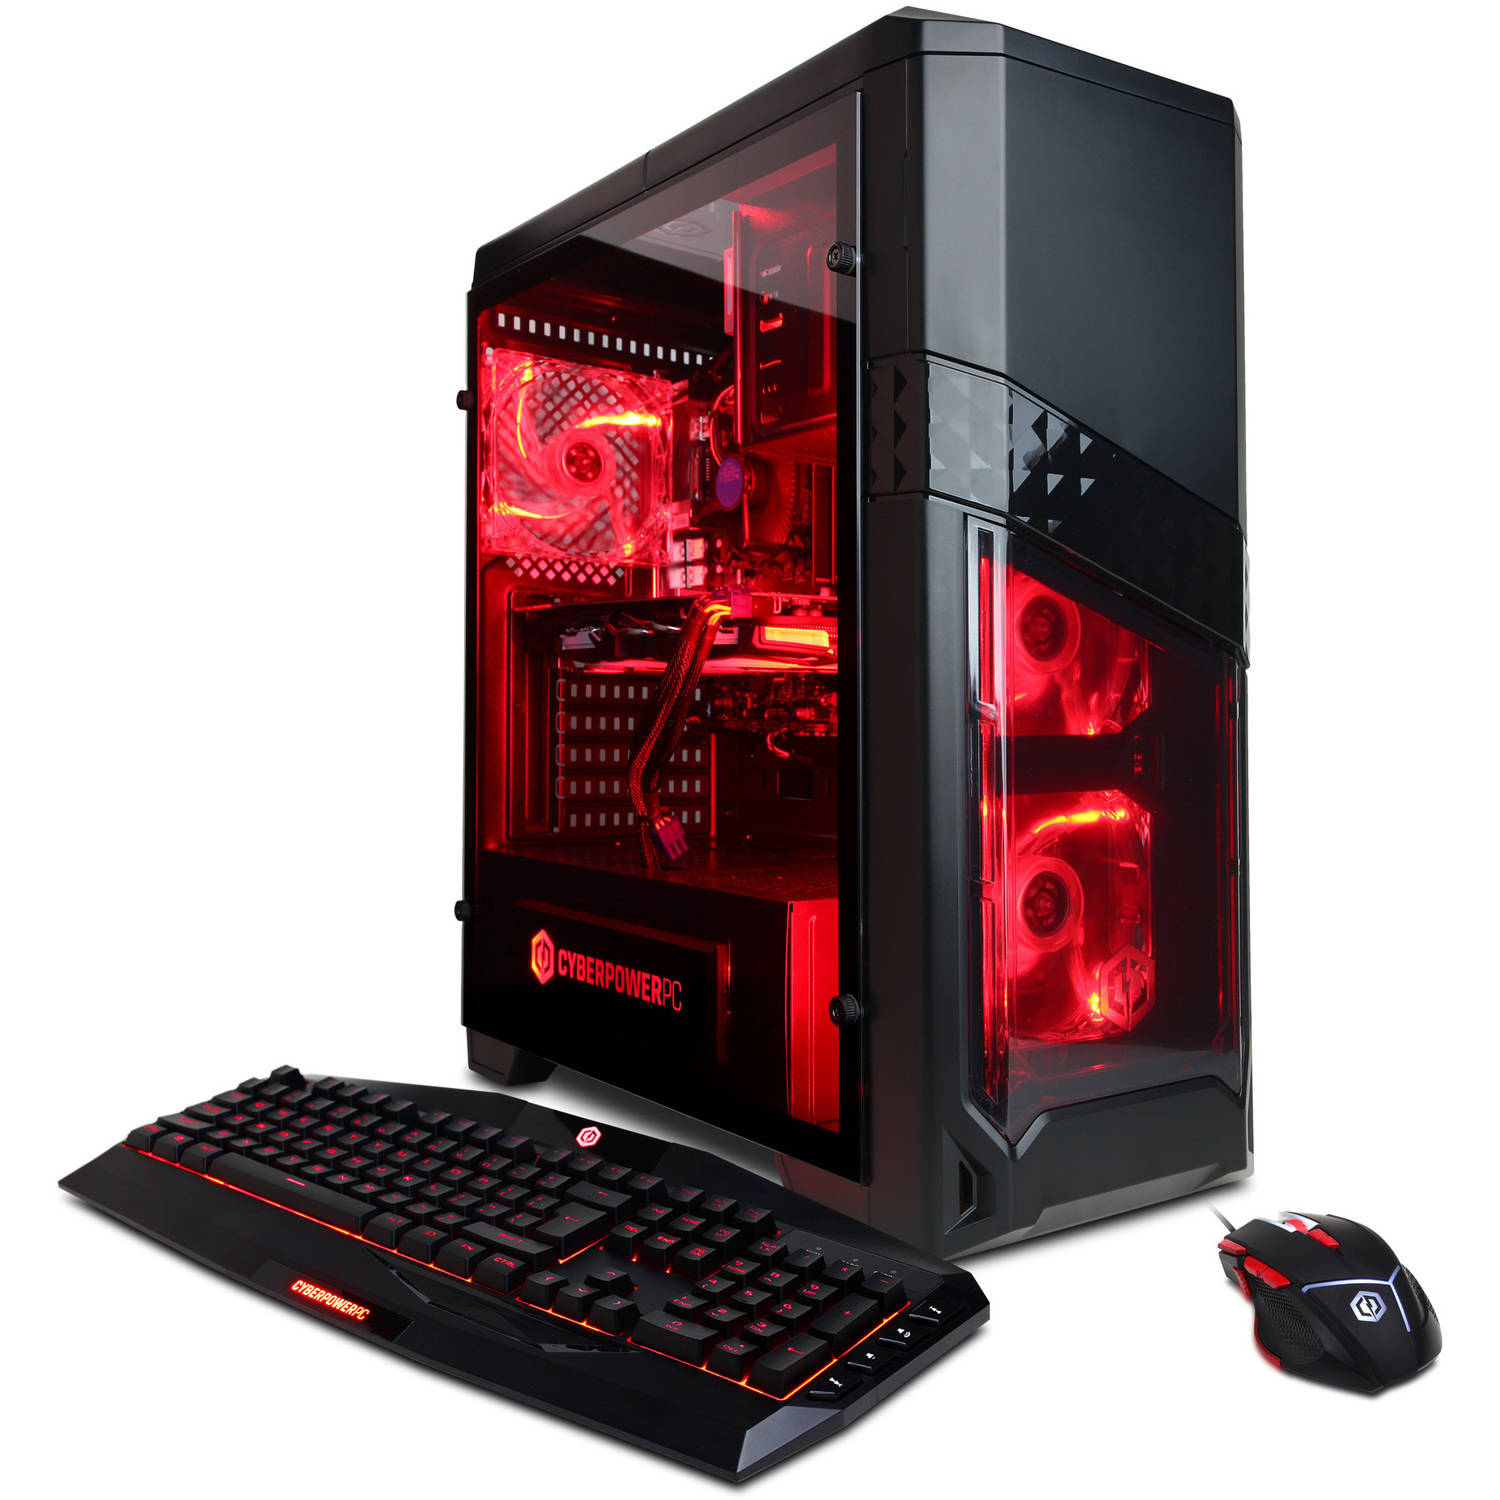 CyberPowerPC Gamer Xtreme GXi9960W Gaming Desktop PC with Intel Core i7-6700 Processor, 8GB Memory, 1TB Hard Drive and Windows 10 Home (Monitor Not Included)